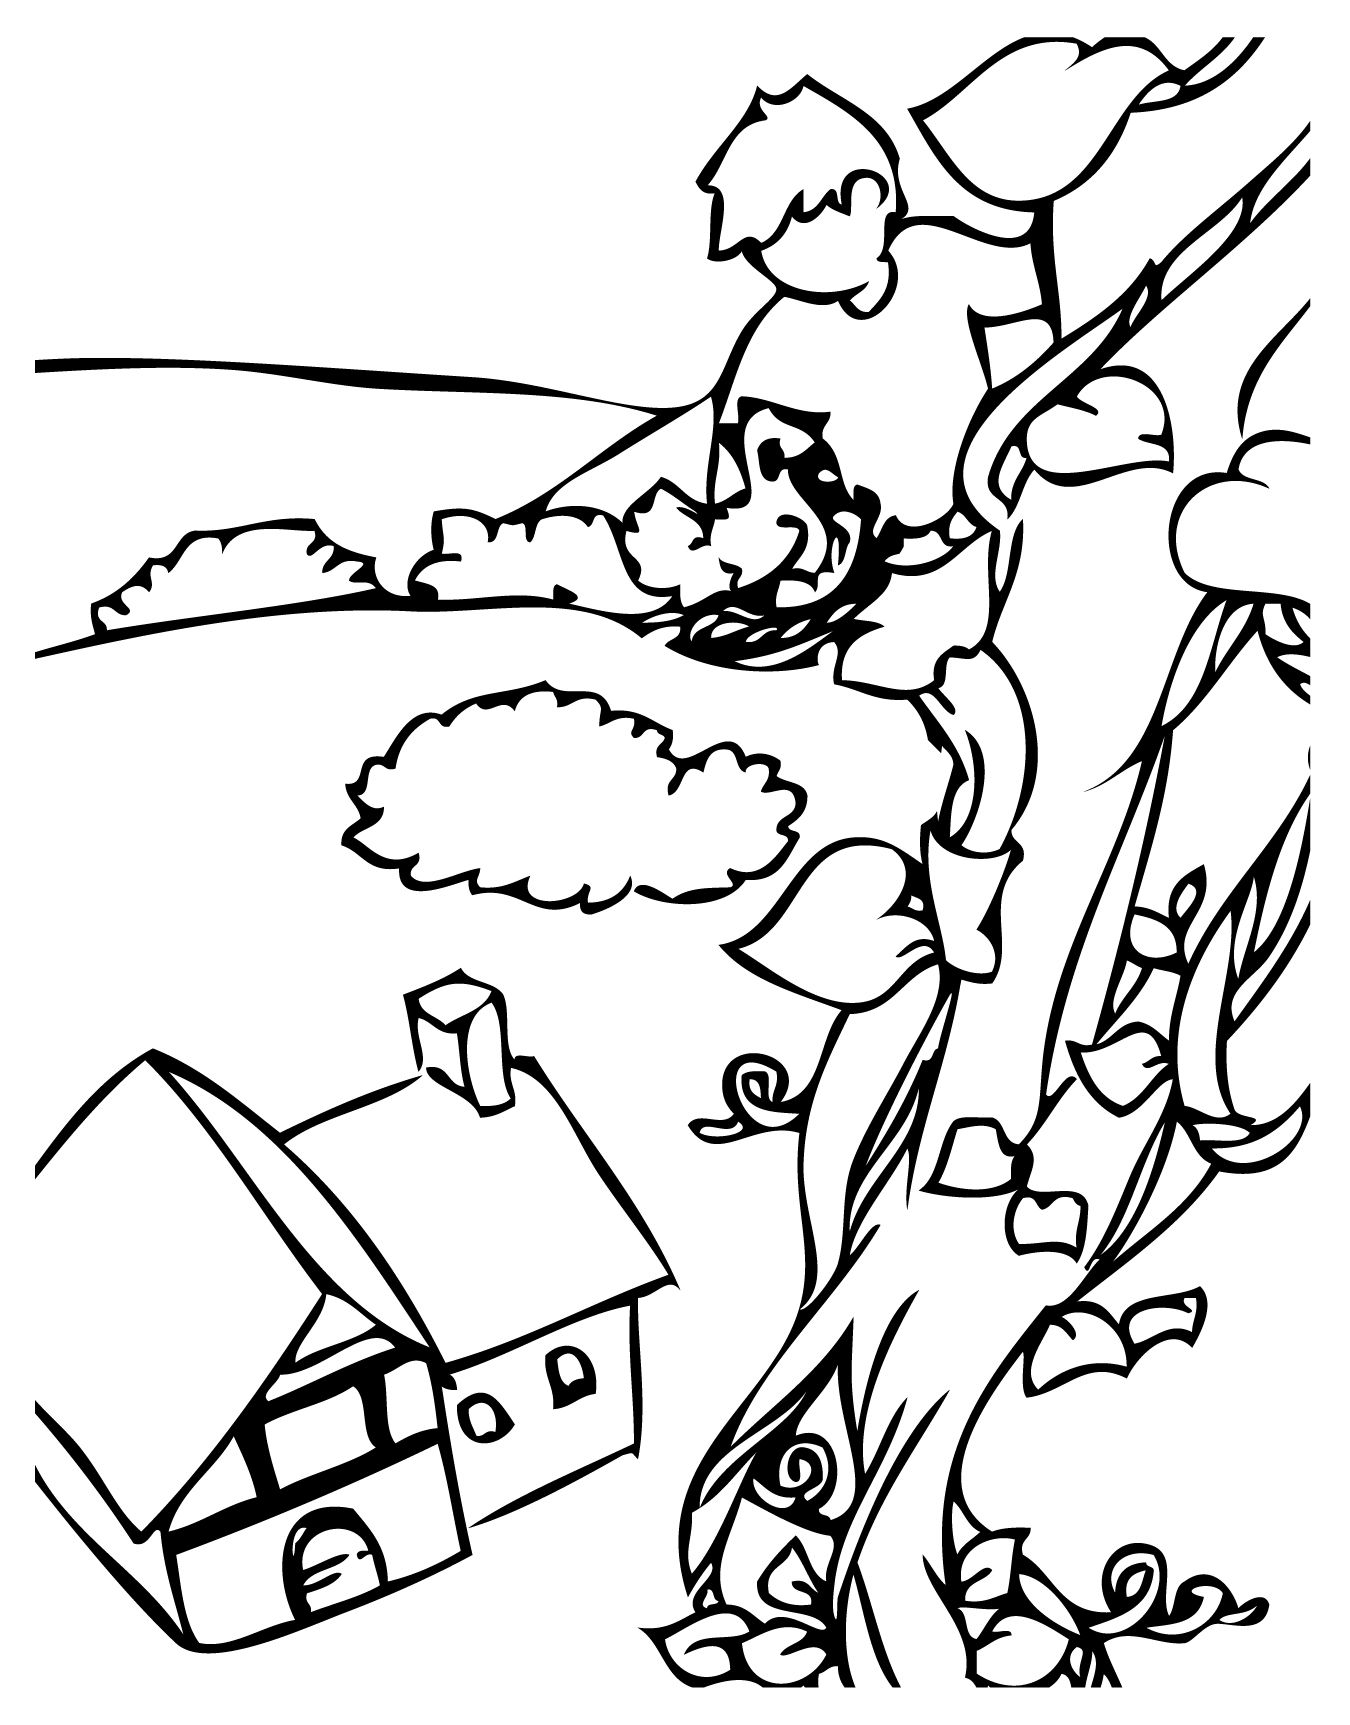 Jack And The Beanstalk Coloring Page Handipoints Clipart Best